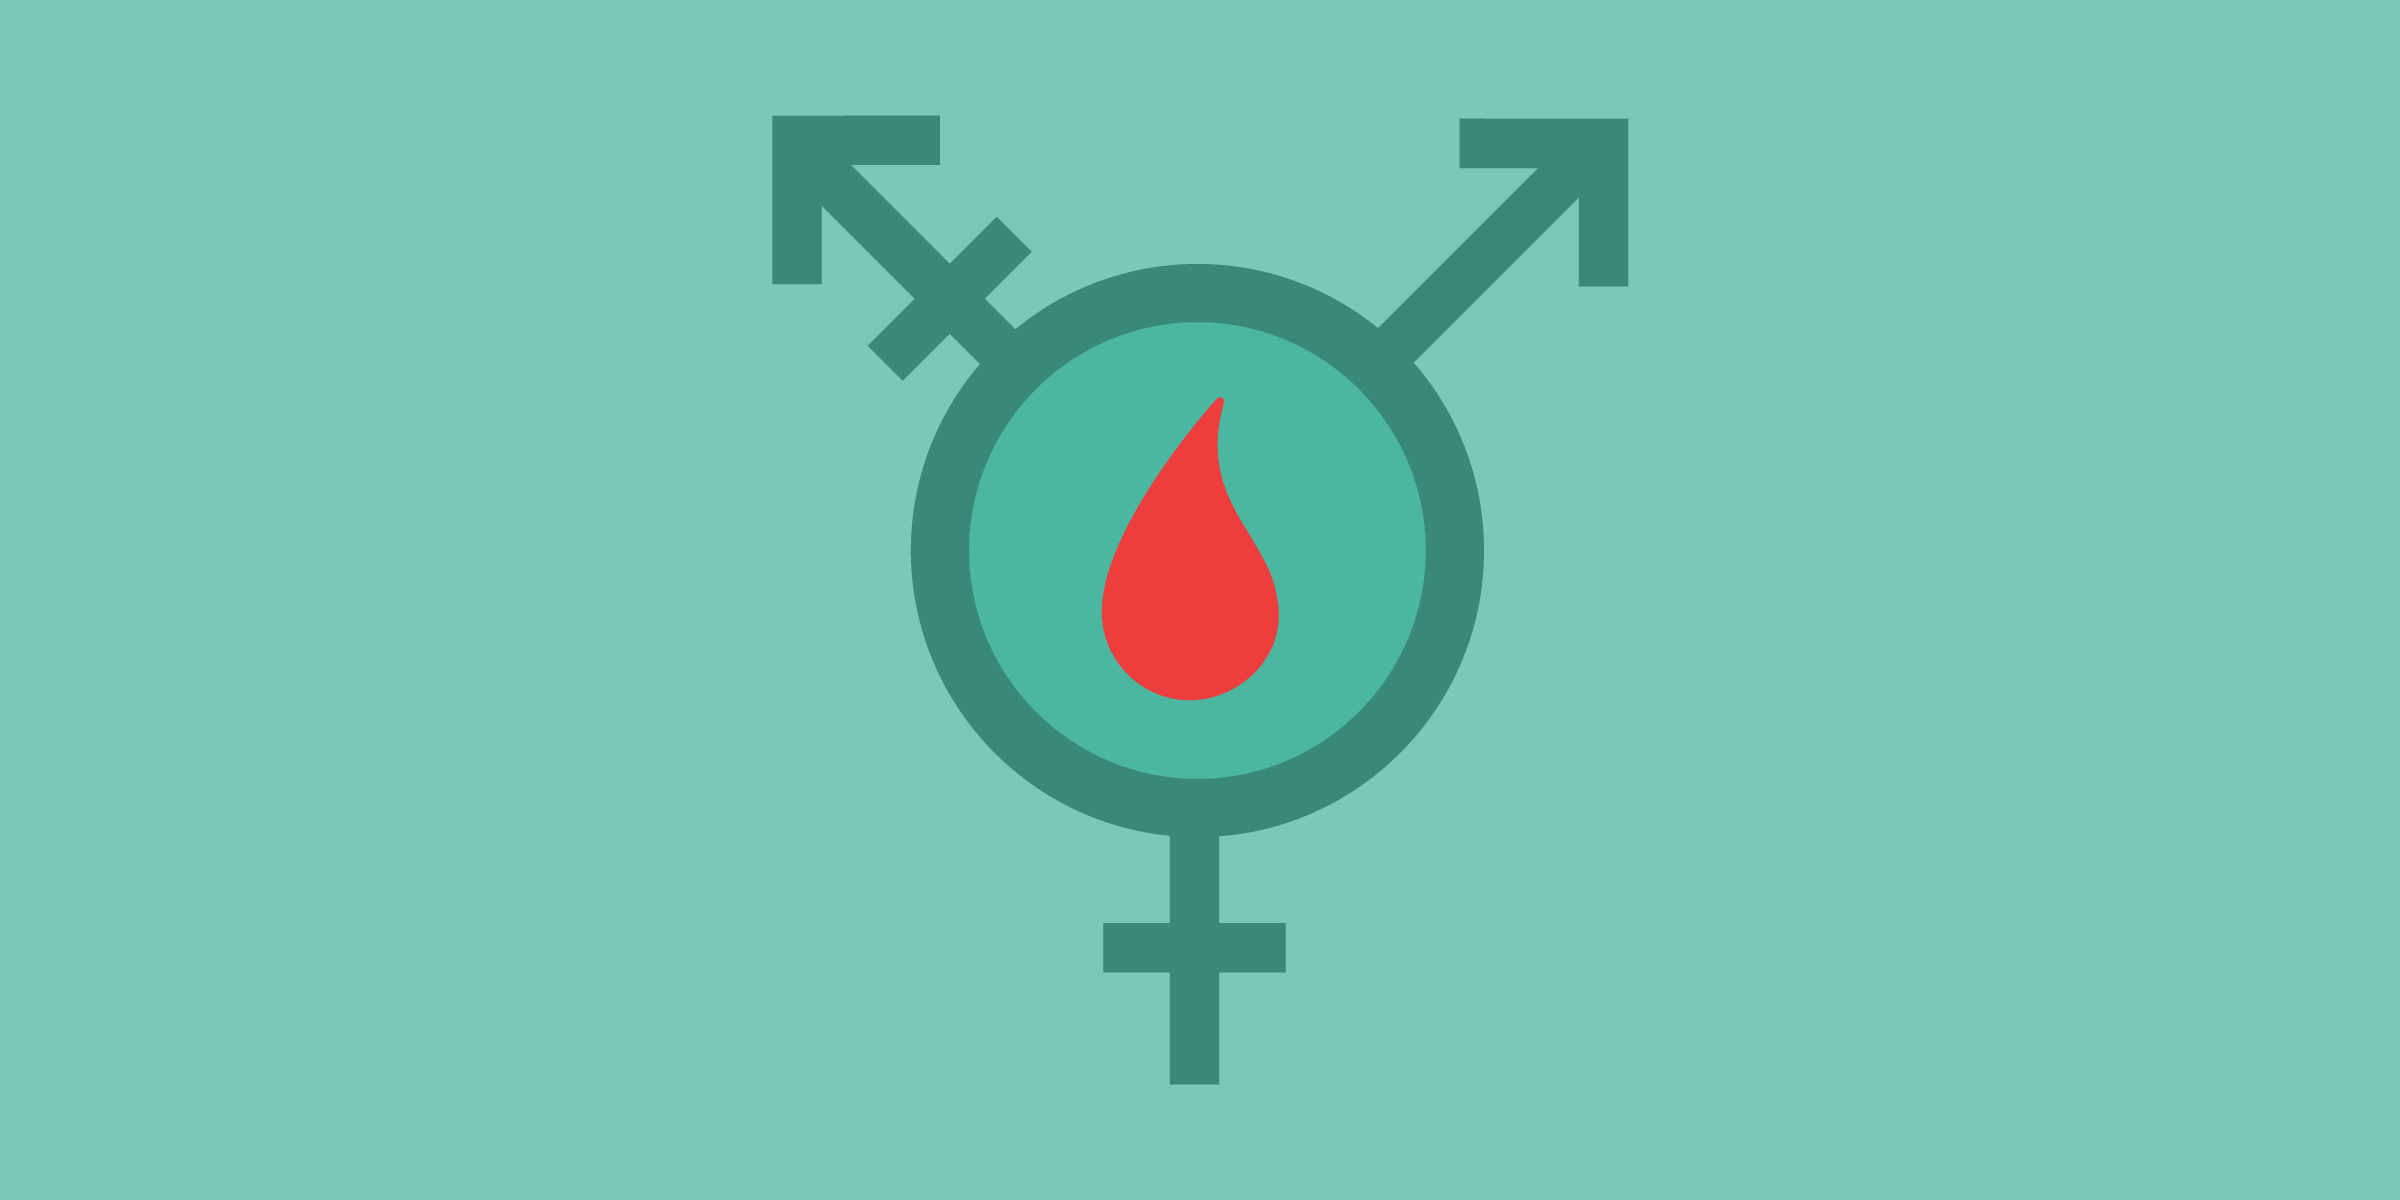 the transgender symbol in teal with a red drop of blood in the middle of the circle